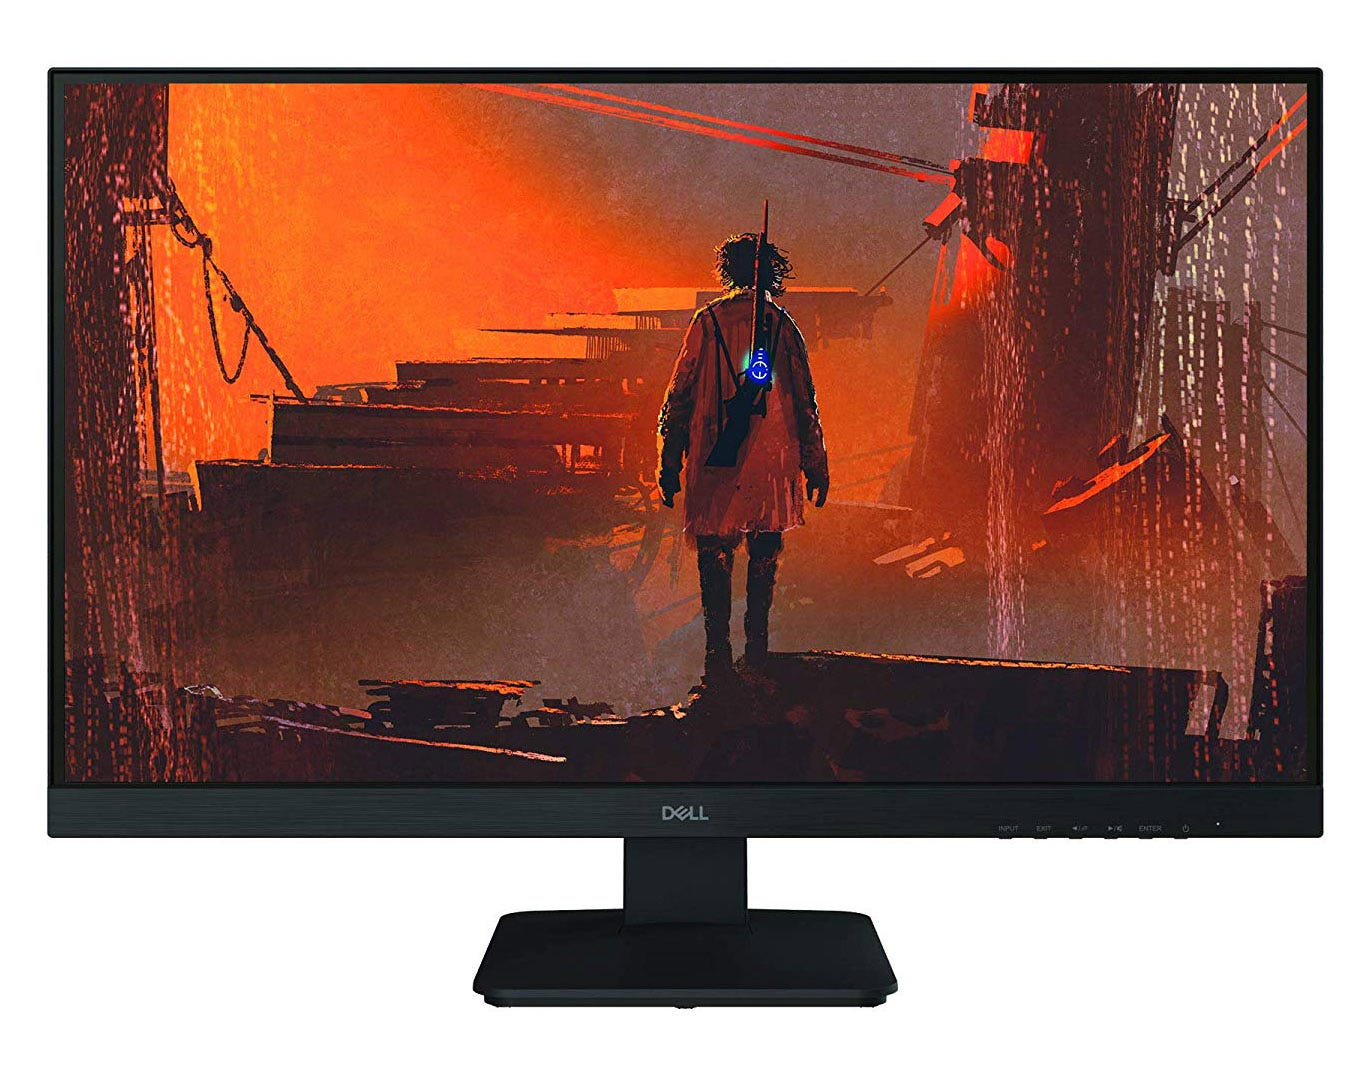 his Dell monitor will give you great gaming performance that won't break the bank.